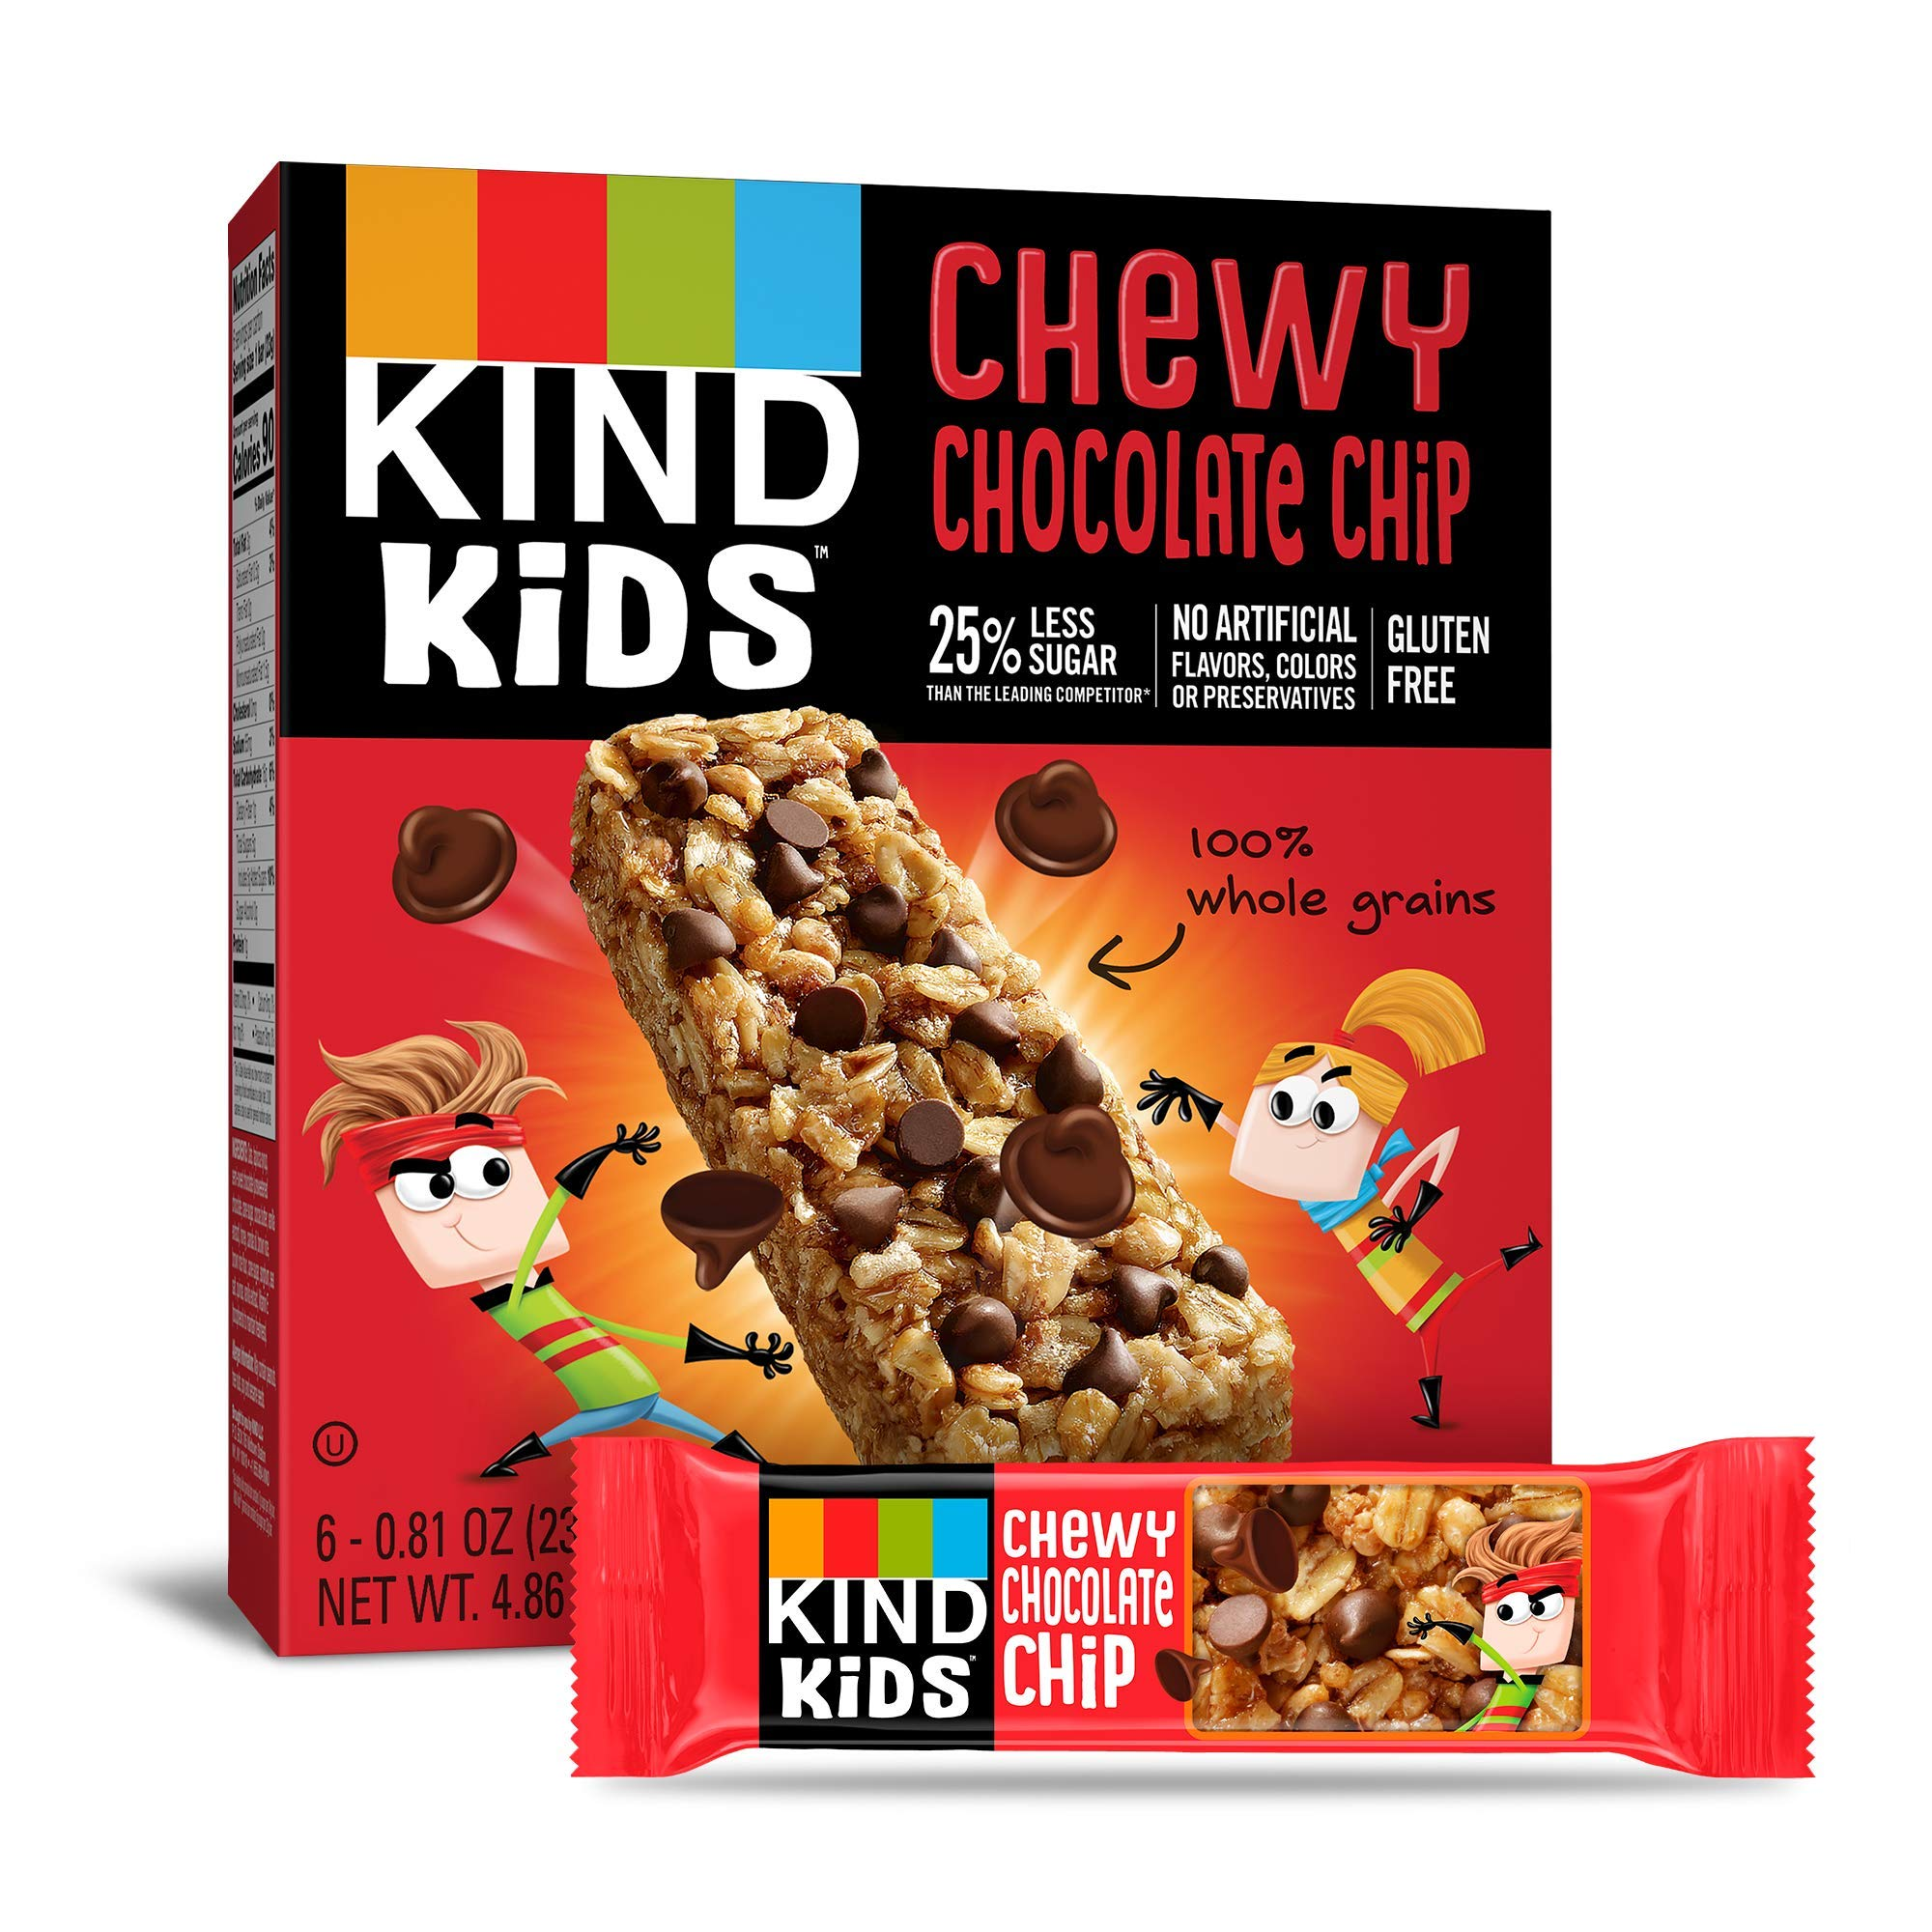 KIND Kids Granola Chewy Bar, Chocolate Chip, 6 Count, Pack of 8 by KIND